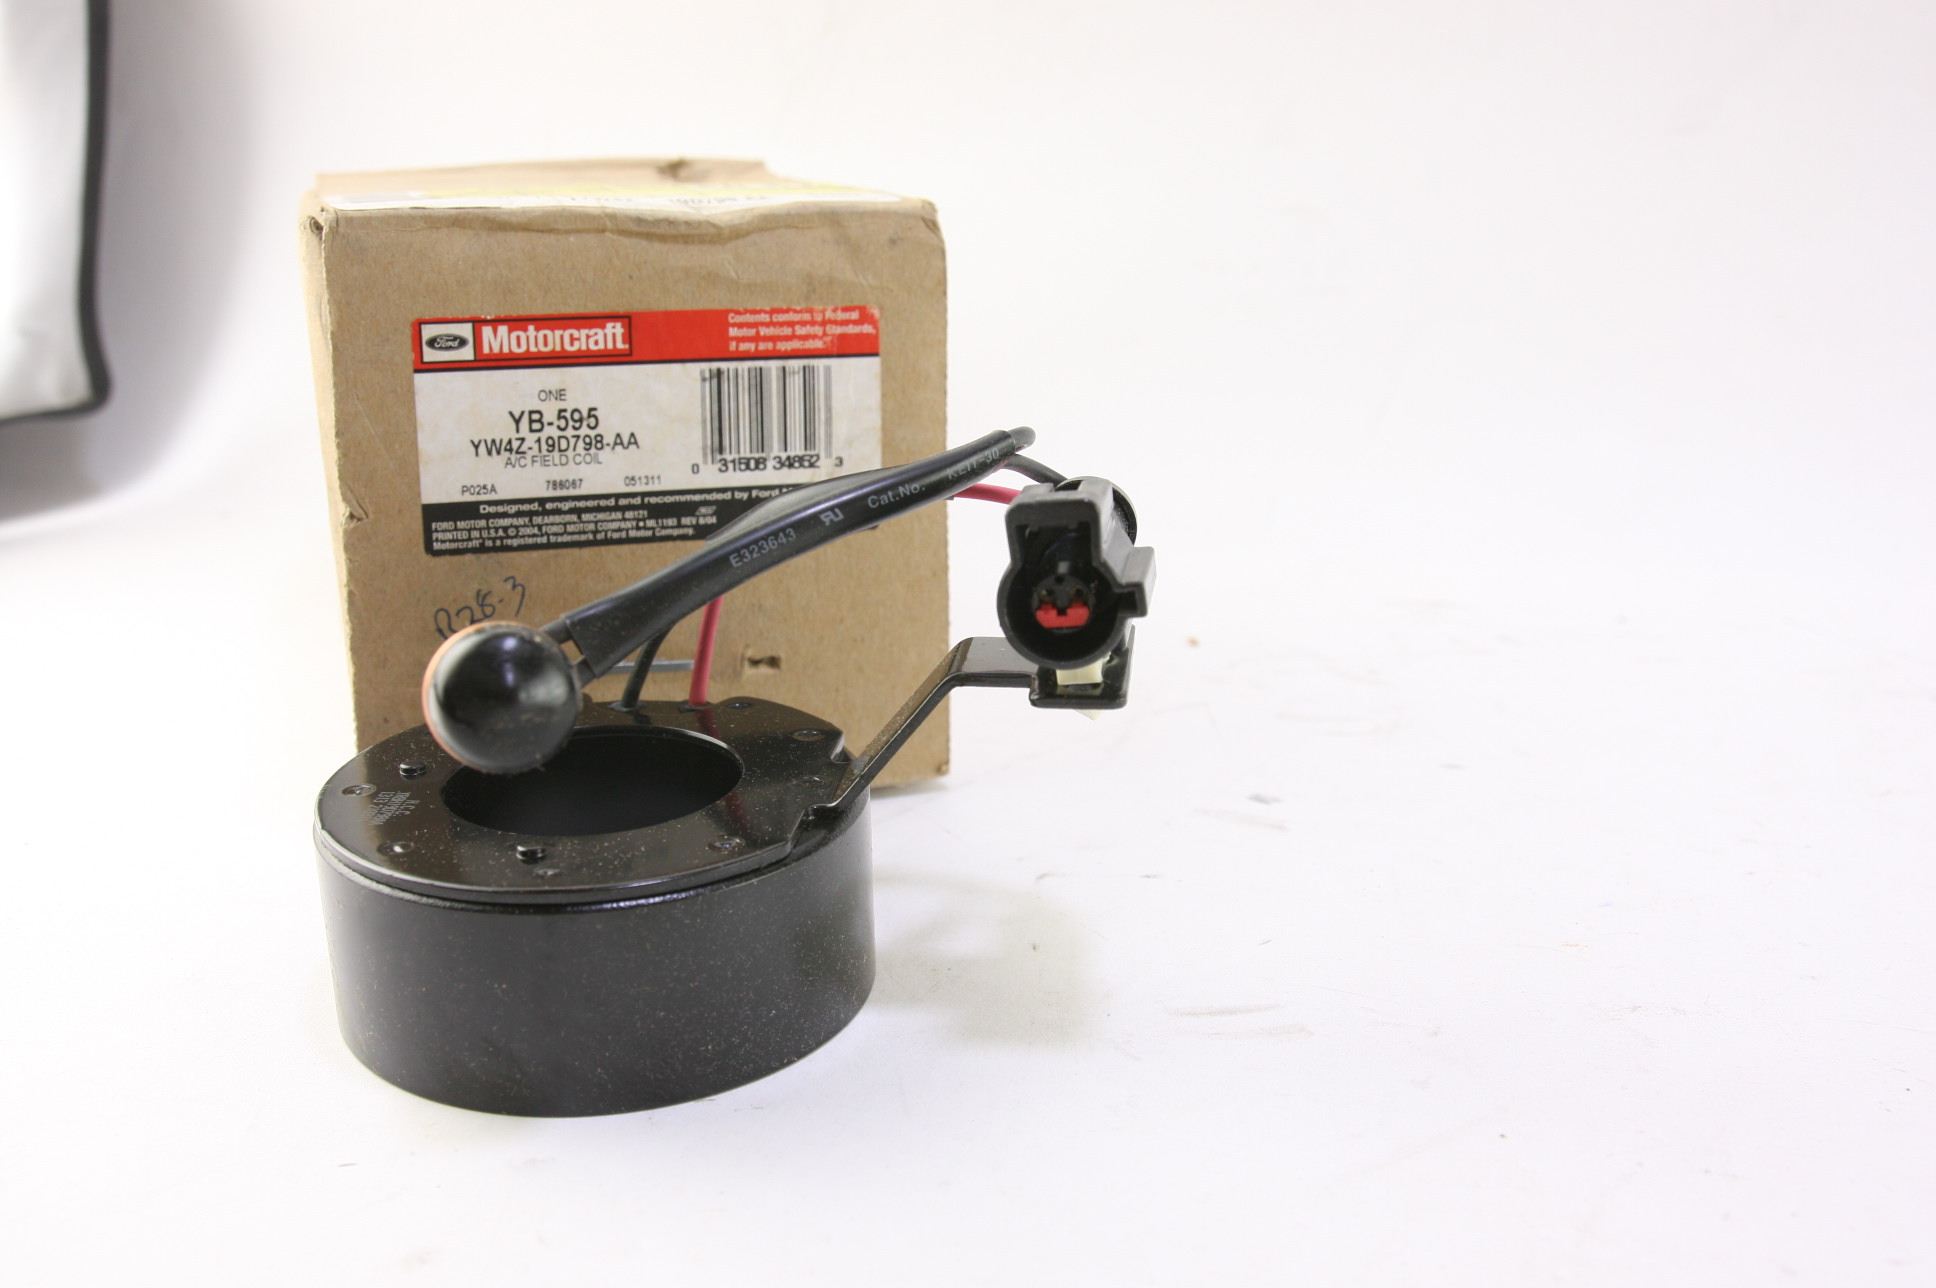 ***New Ford OEM YW4Z19D798AA Compressor Clutch Coil Fast Free Shipping NIP - image 1